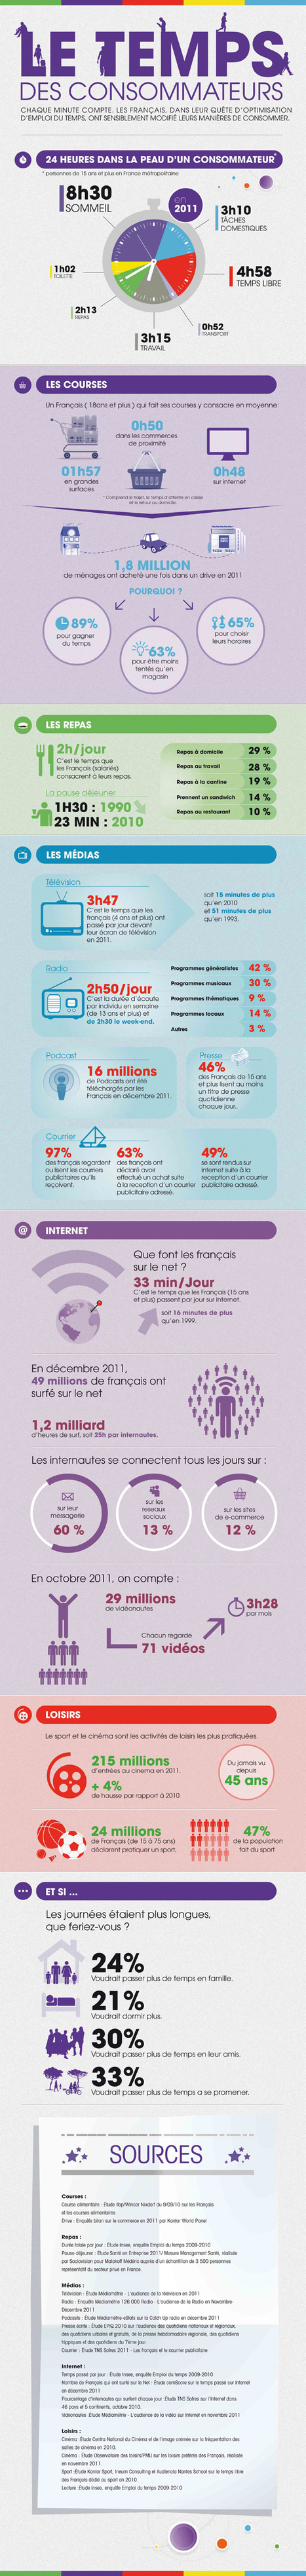 [Infographie] Le temps des consommateurs | Time to Learn | Scoop.it